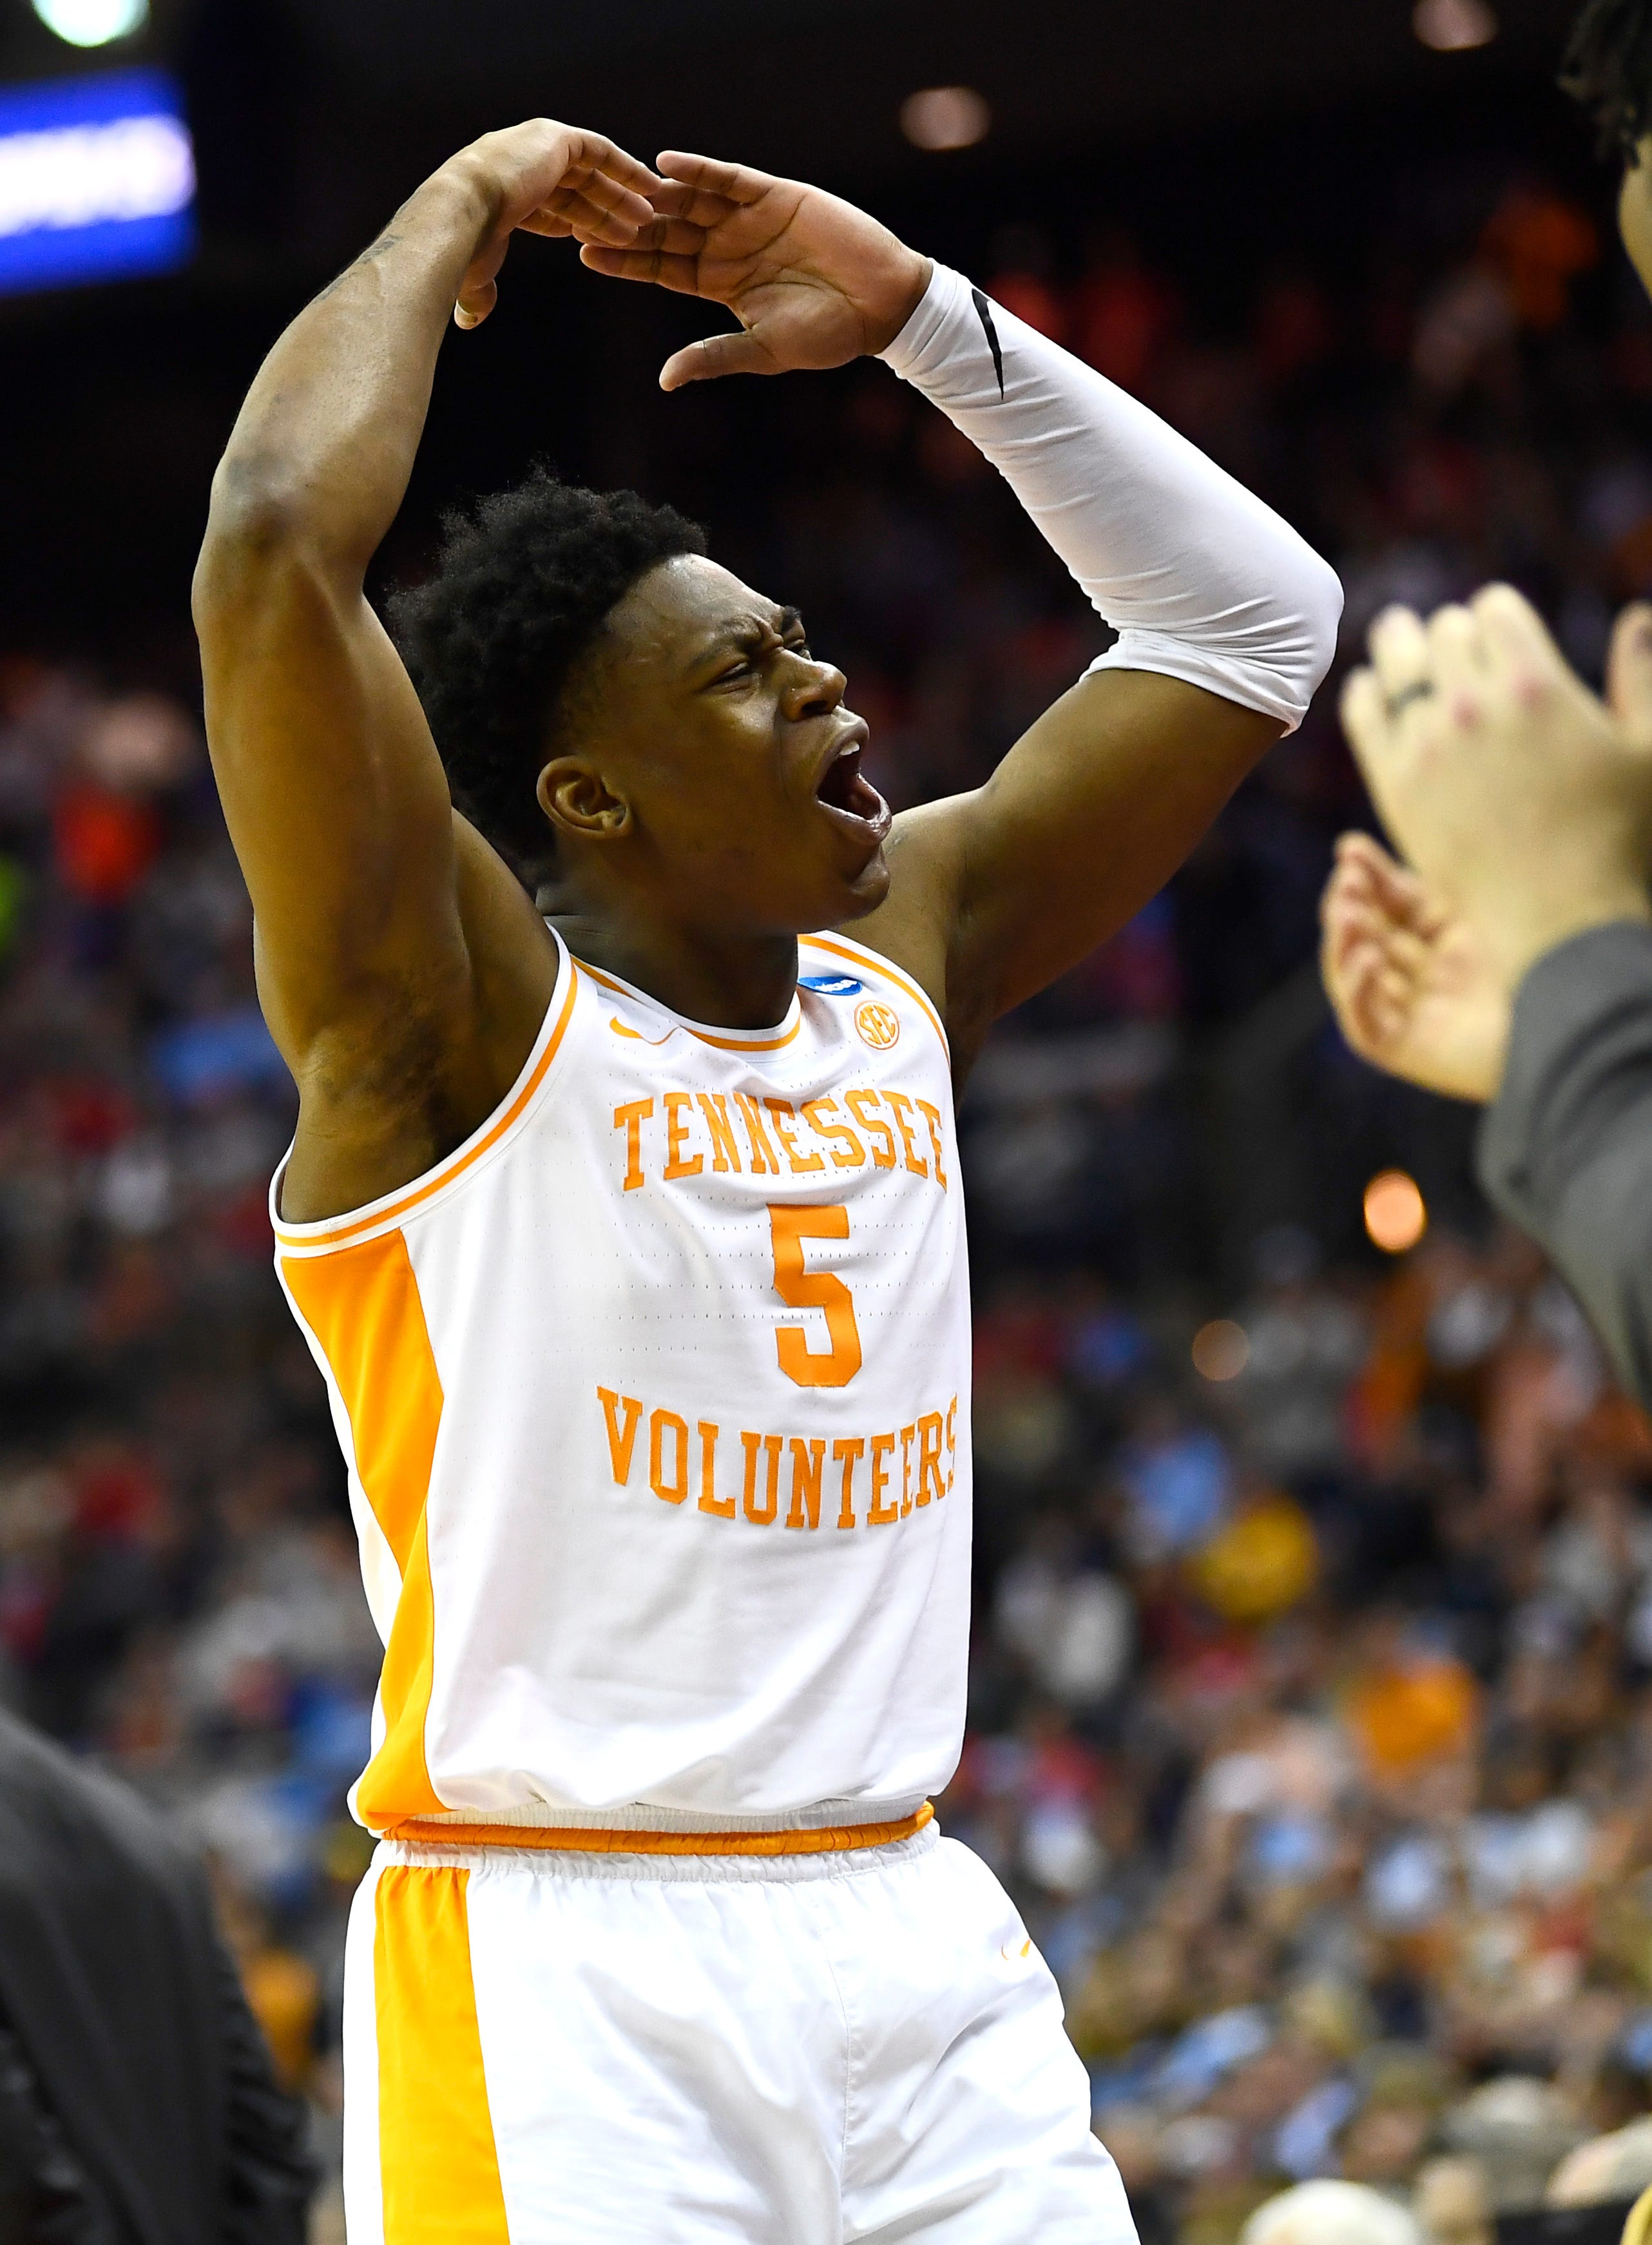 Why Tennessee senior leader Admiral Schofield did not play in OT against Iowa